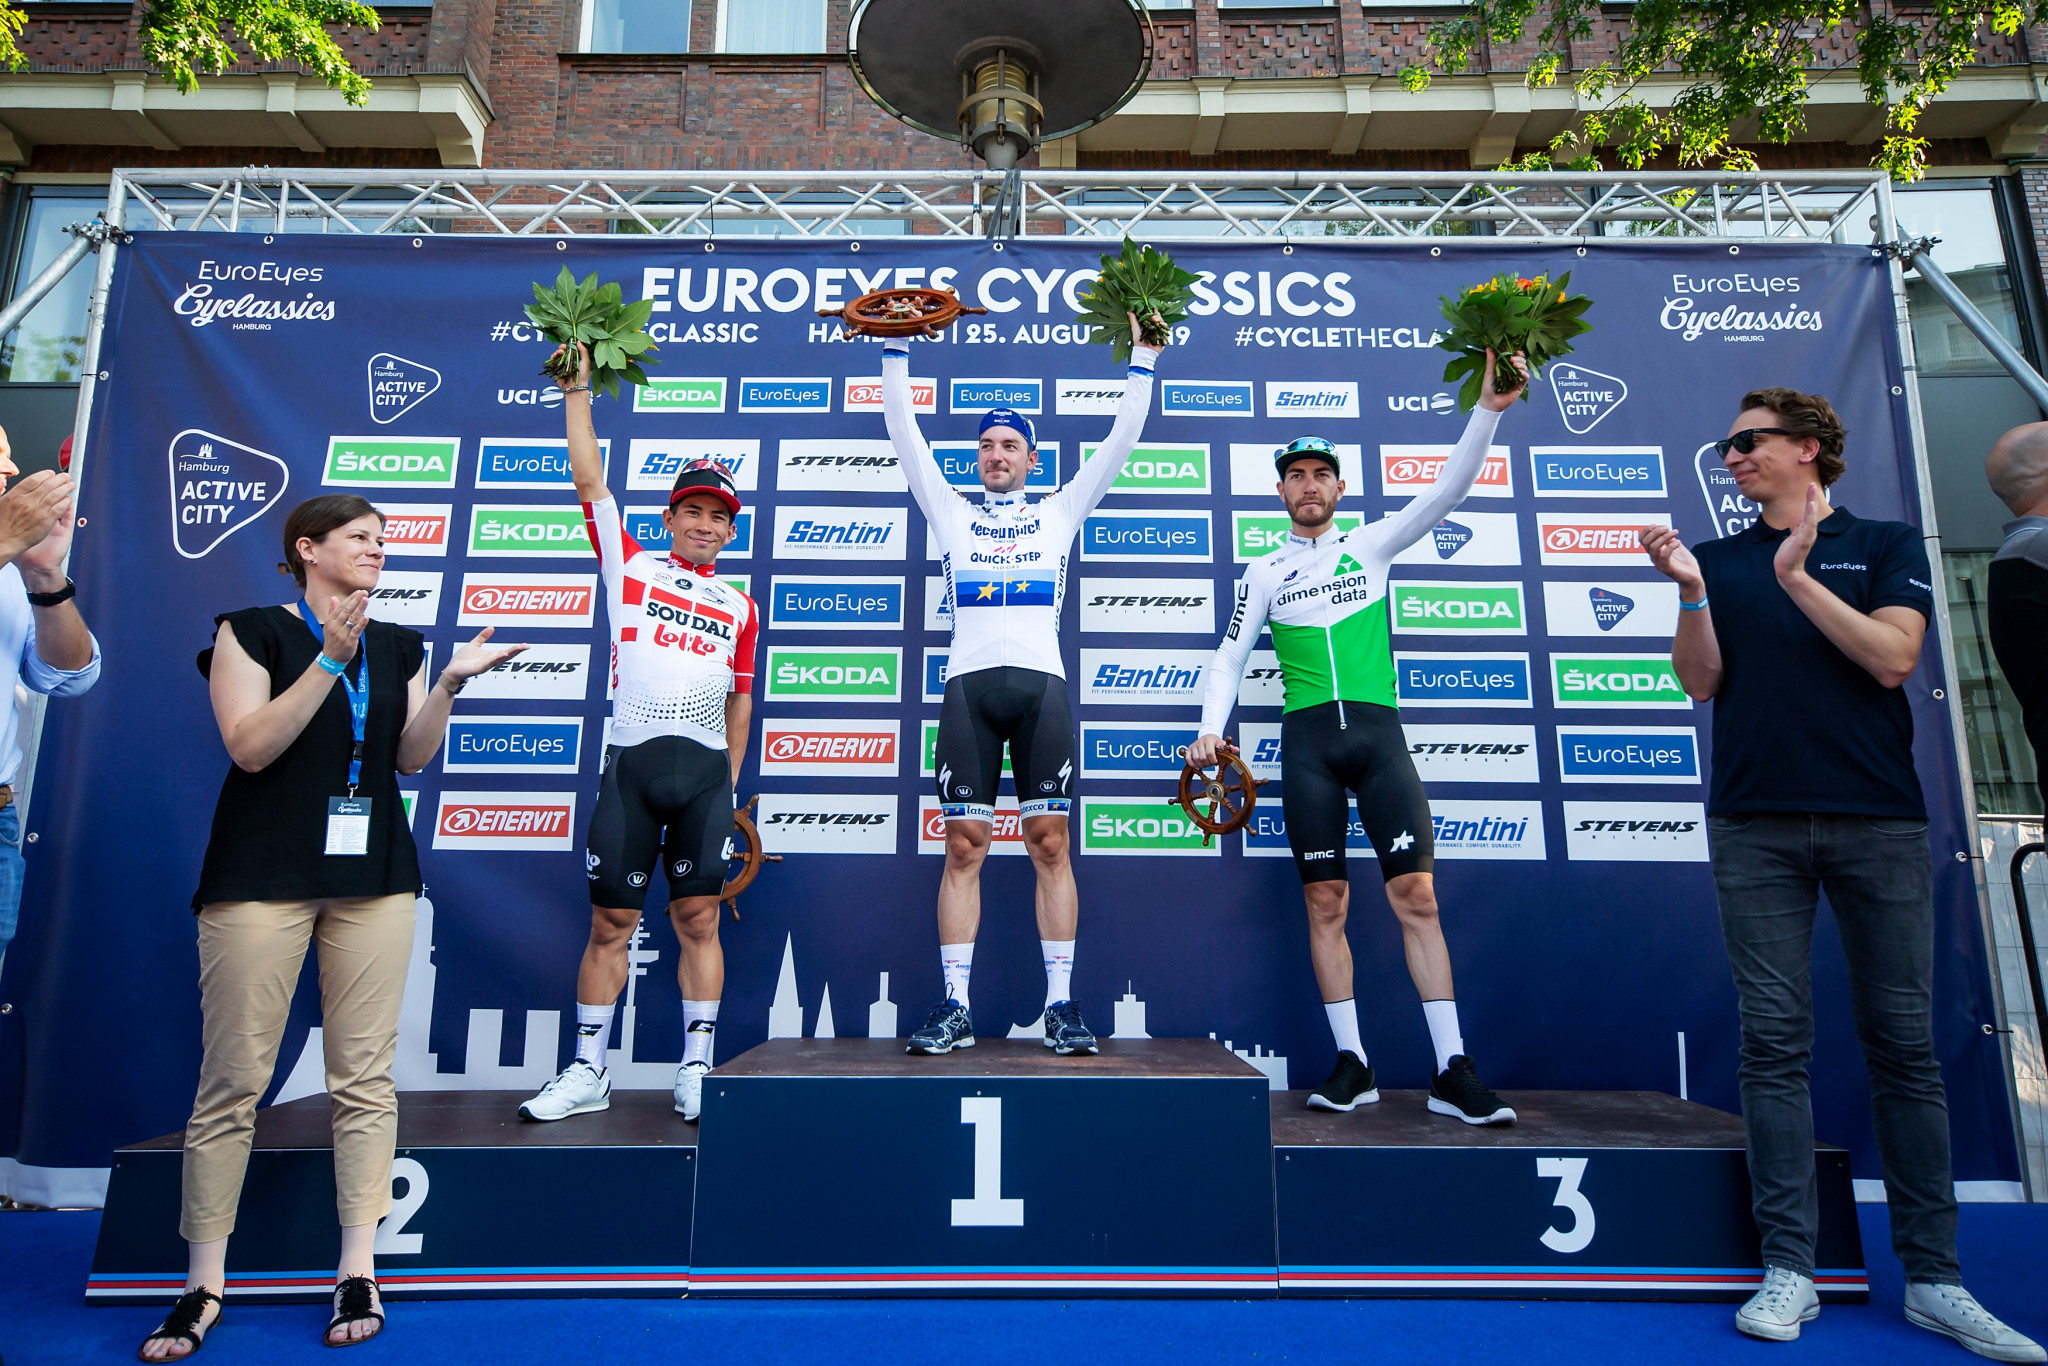 Viviani wins third successive EuroEyes CyClassics Hamburg title in Germany